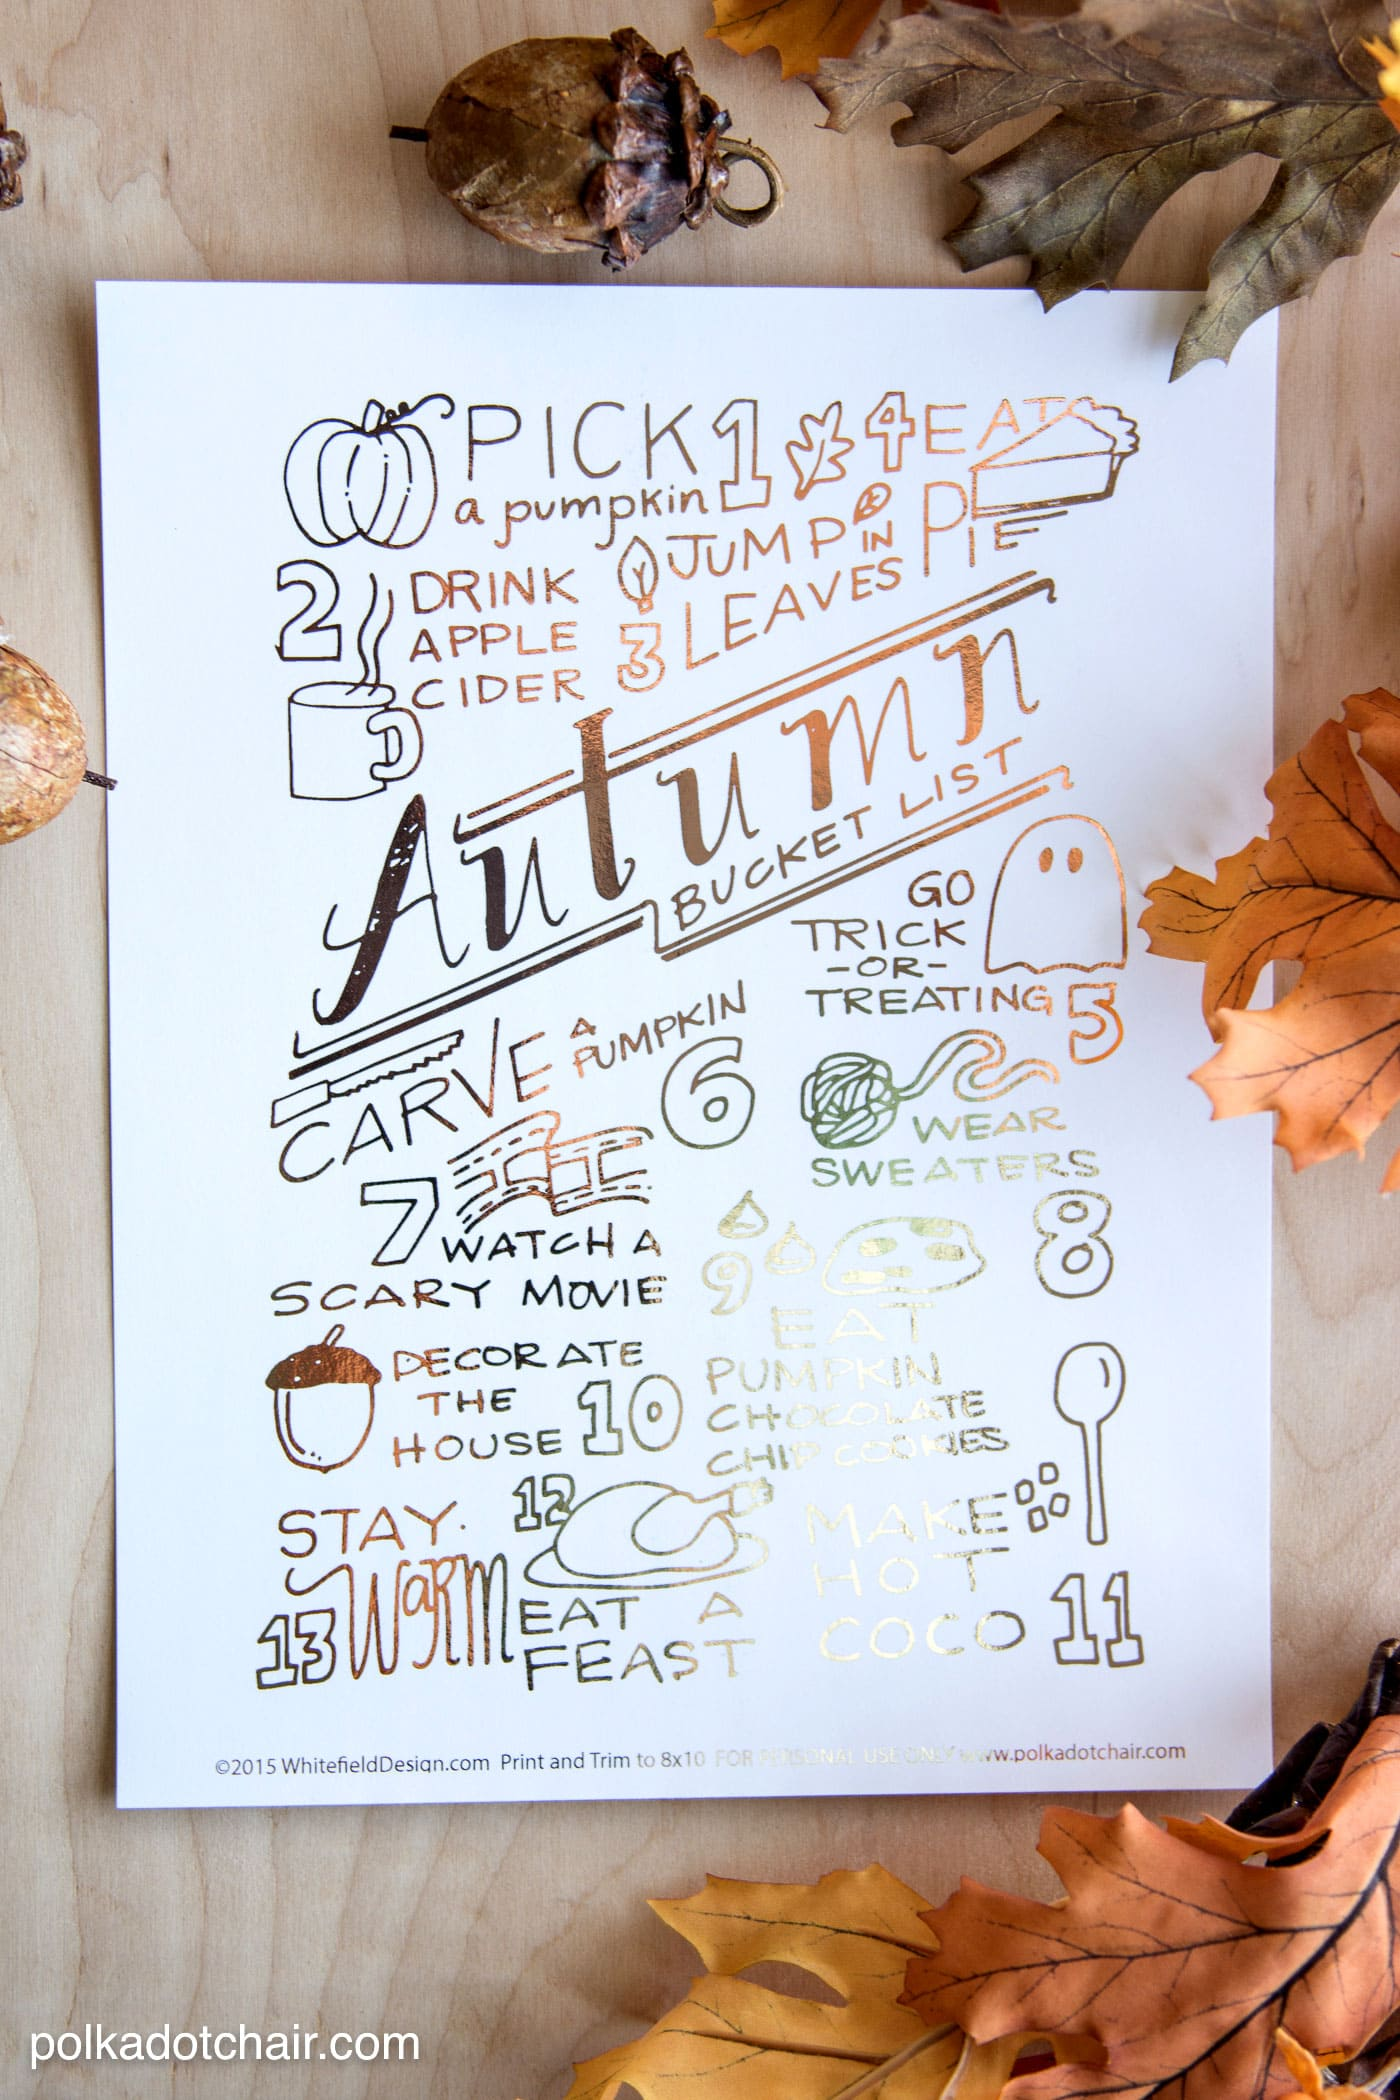 The Ultimate Autumn and Fall Bucket List - you can download a copy of it on polkadotchair.com